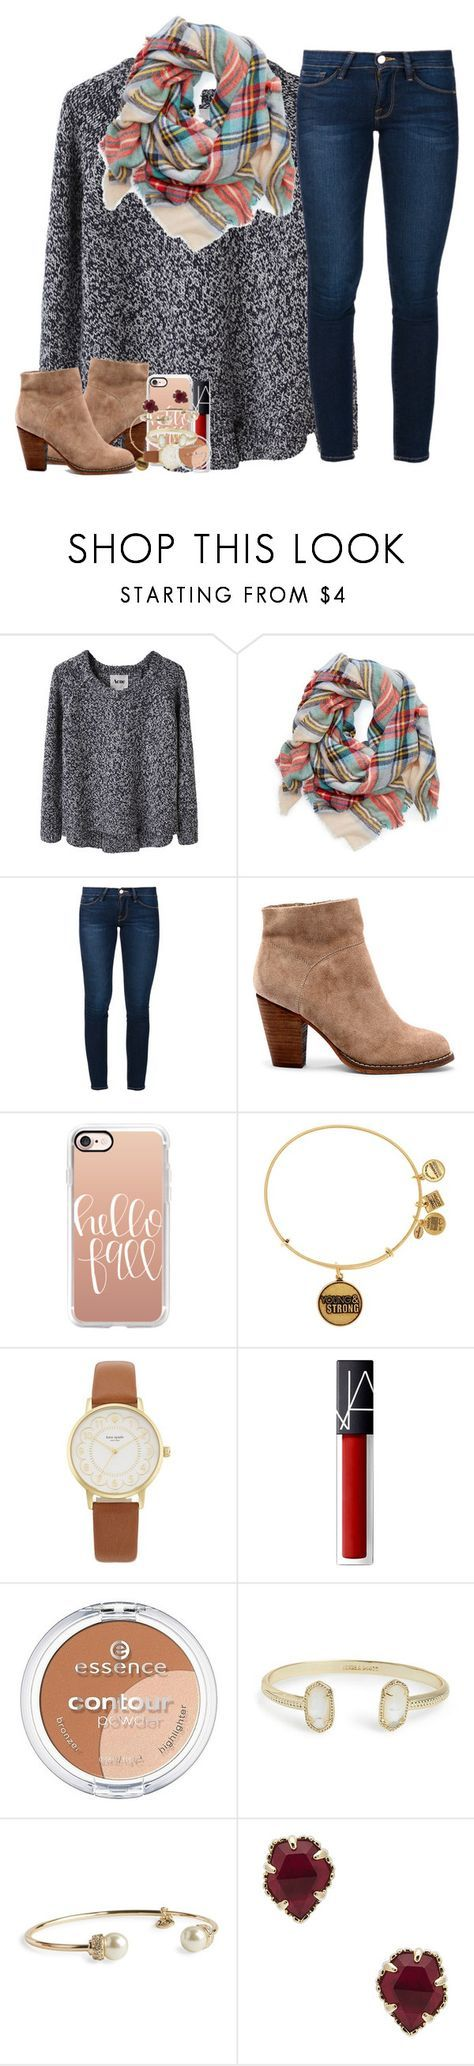 """{ i want you to be mine again, baby }"" by ellaswiftie13 ❤ liked on Polyvore featuring Acne Studios, Frame Denim, Sole Society, Casetify, Alex and Ani, Kate Spade, NARS Cosmetics, Essence, Kendra Scott and Vera Bradley"